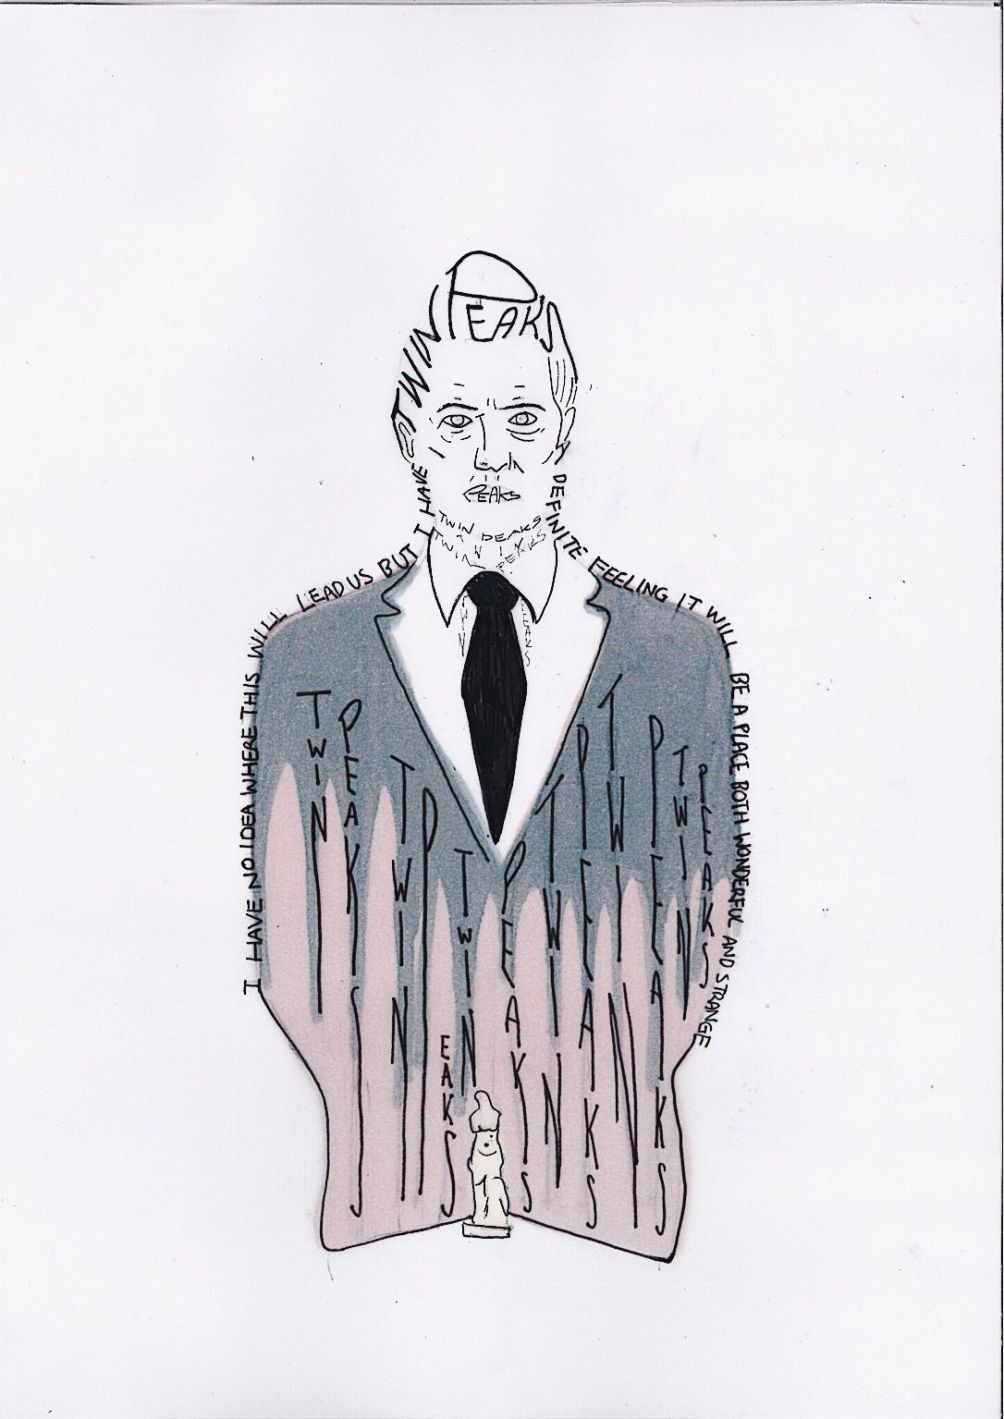 Twin Peaks, David Lynch por Sara Barquinero